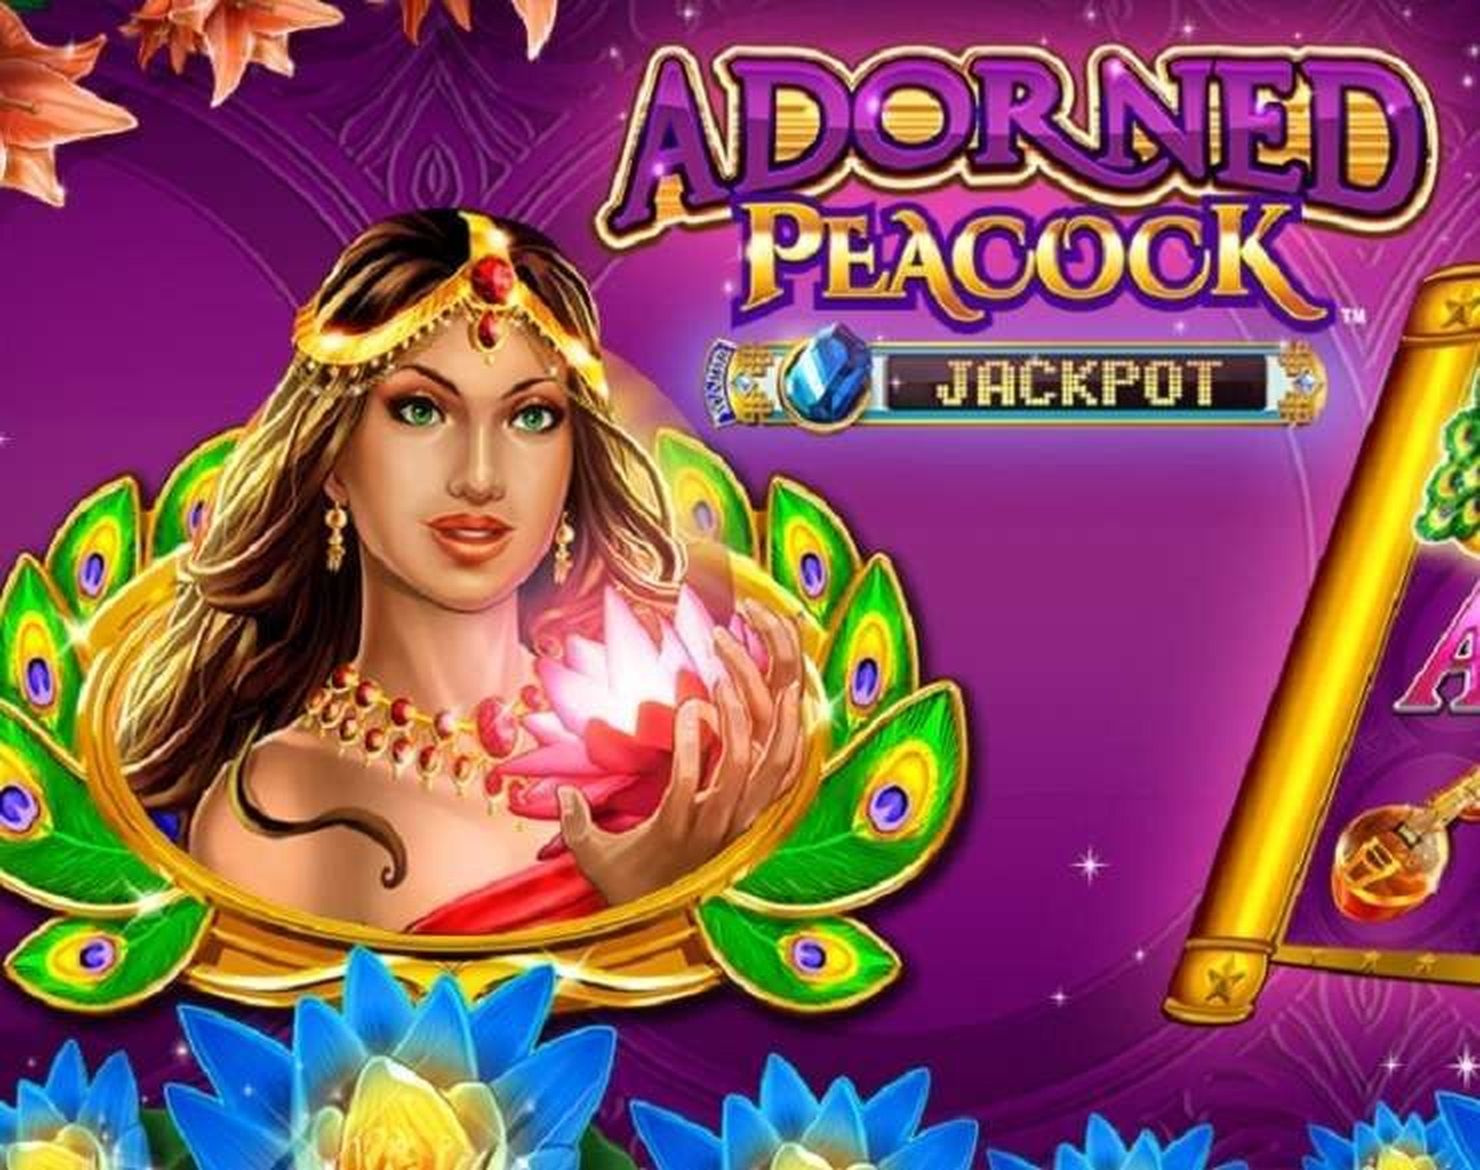 Se Adorned Peacock Online Slot Demo Game, Konami Gaming